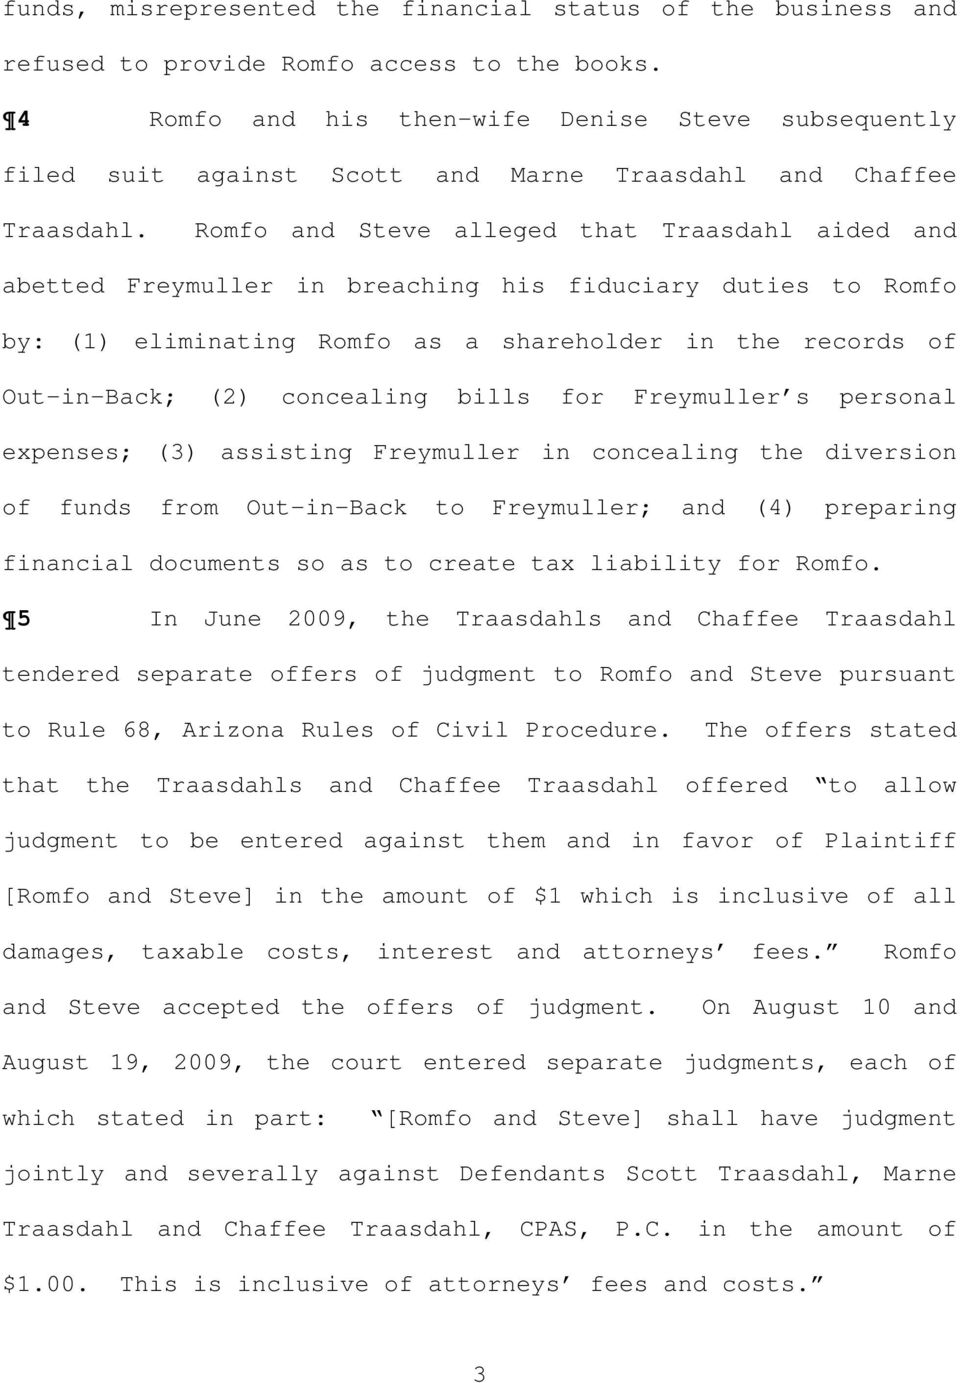 Romfo and Steve alleged that Traasdahl aided and abetted Freymuller in breaching his fiduciary duties to Romfo by: (1) eliminating Romfo as a shareholder in the records of Out-in-Back; (2) concealing